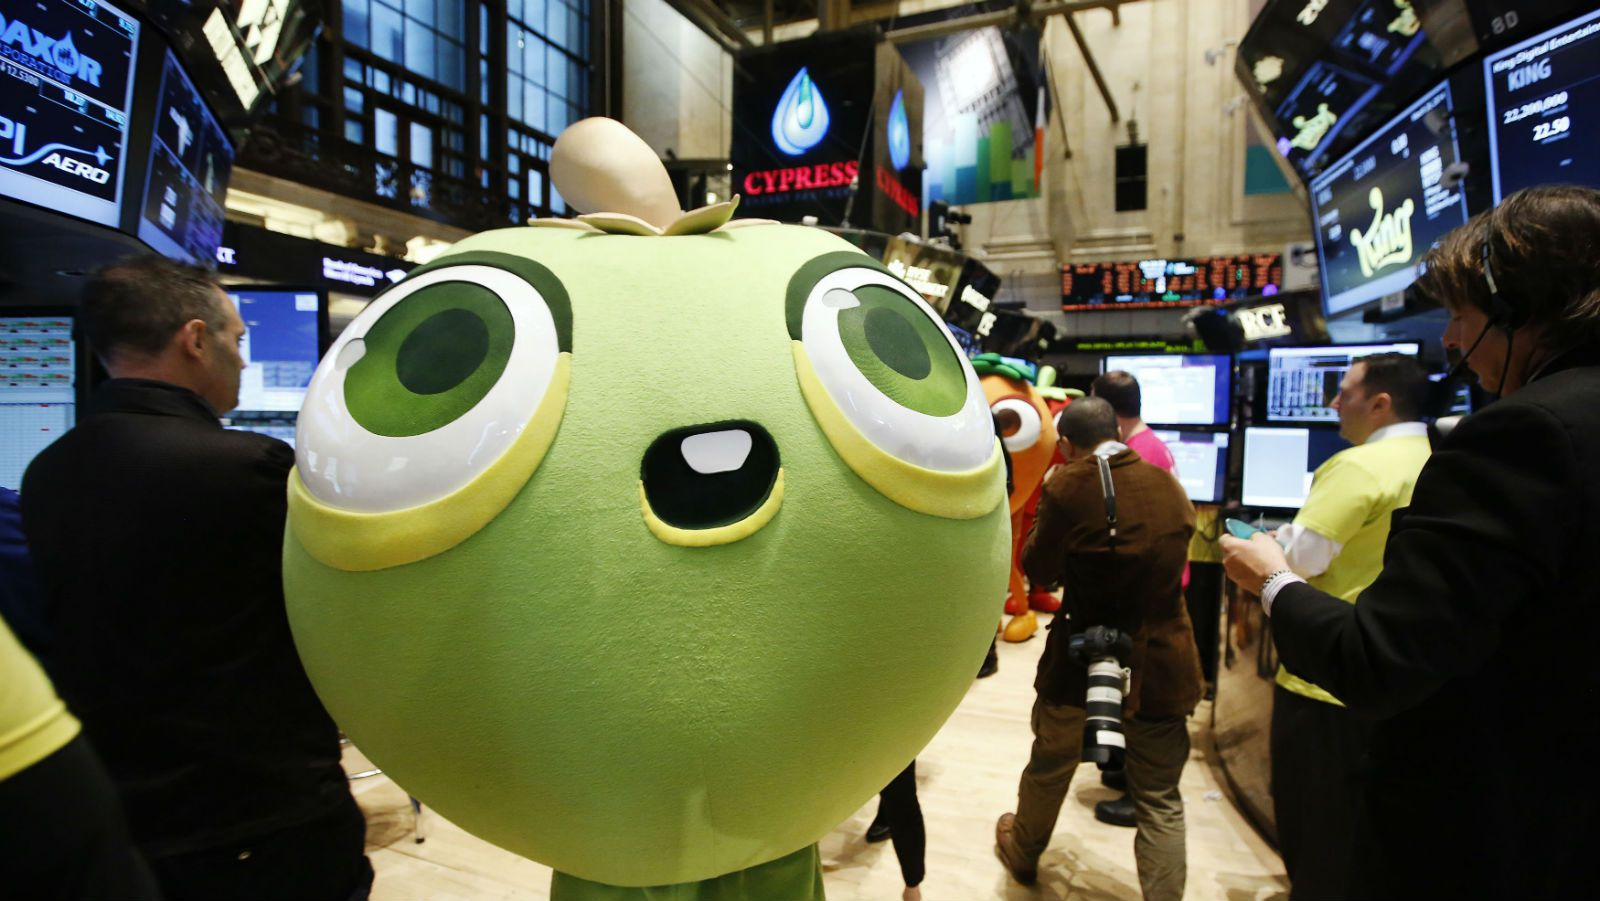 """A mascot dressed as a character from the mobile game """"Candy Crush Saga"""" walks the floor of the New York Stock Exchange during the IPO of Mobile game maker King Digital Entertainment Plc March 26, 2014. REUTERS/Brendan McDermid (UNITED STATES - Tags: BUSINESS SCIENCE TECHNOLOGY ENTERTAINMENT)"""